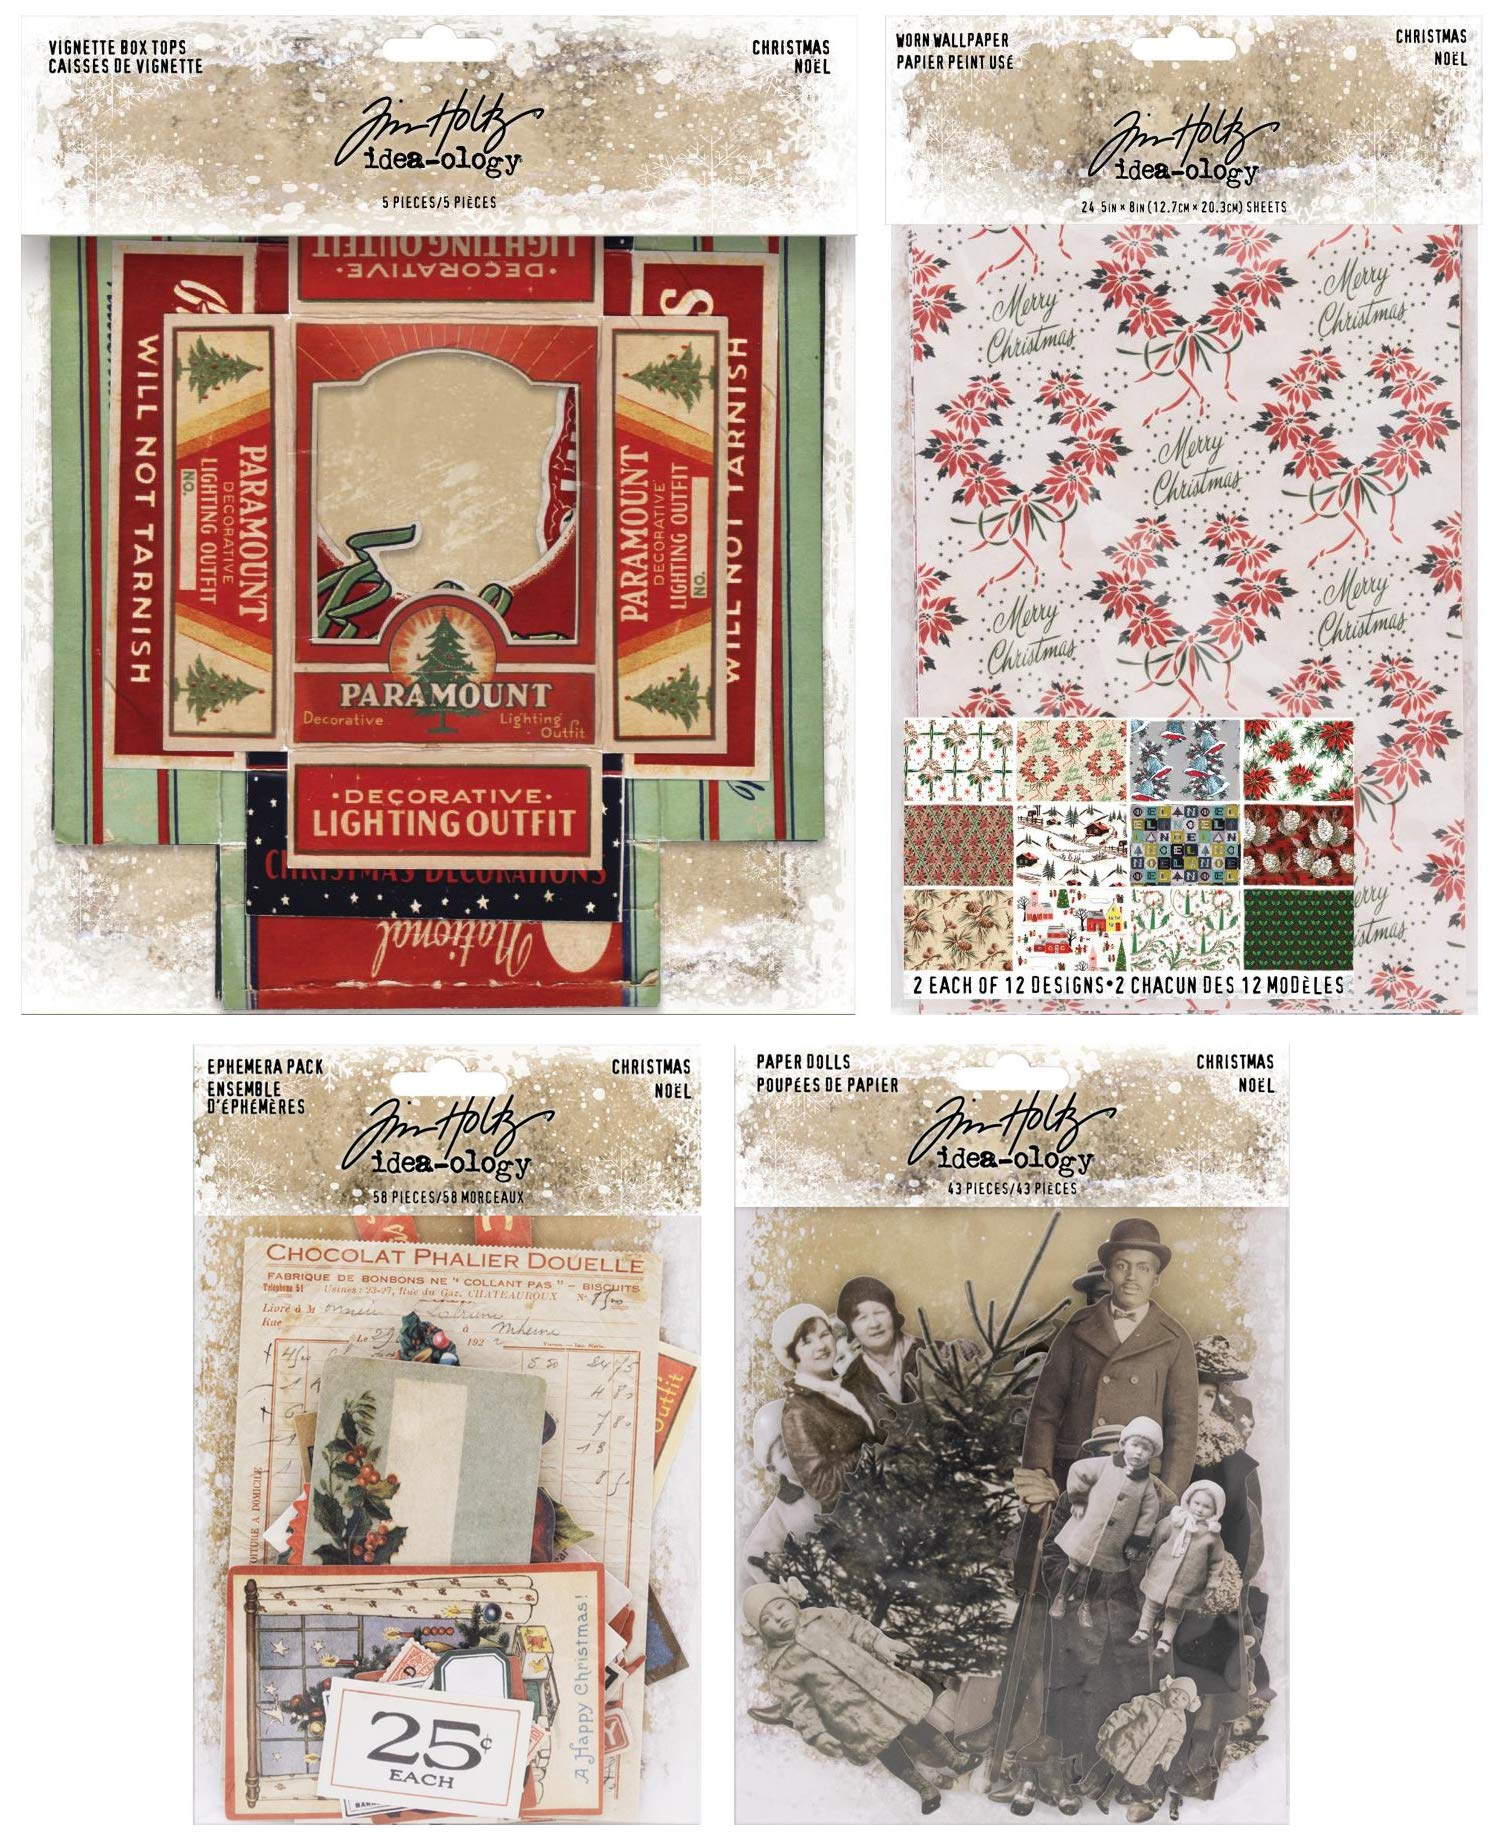 Tim Holtz 2018 Holiday Paperie - Box Tops, Worn Wallpaper, Christmas Paper Dolls and Christmas Ephemera - 4 Items by Tim Holtz Advantus